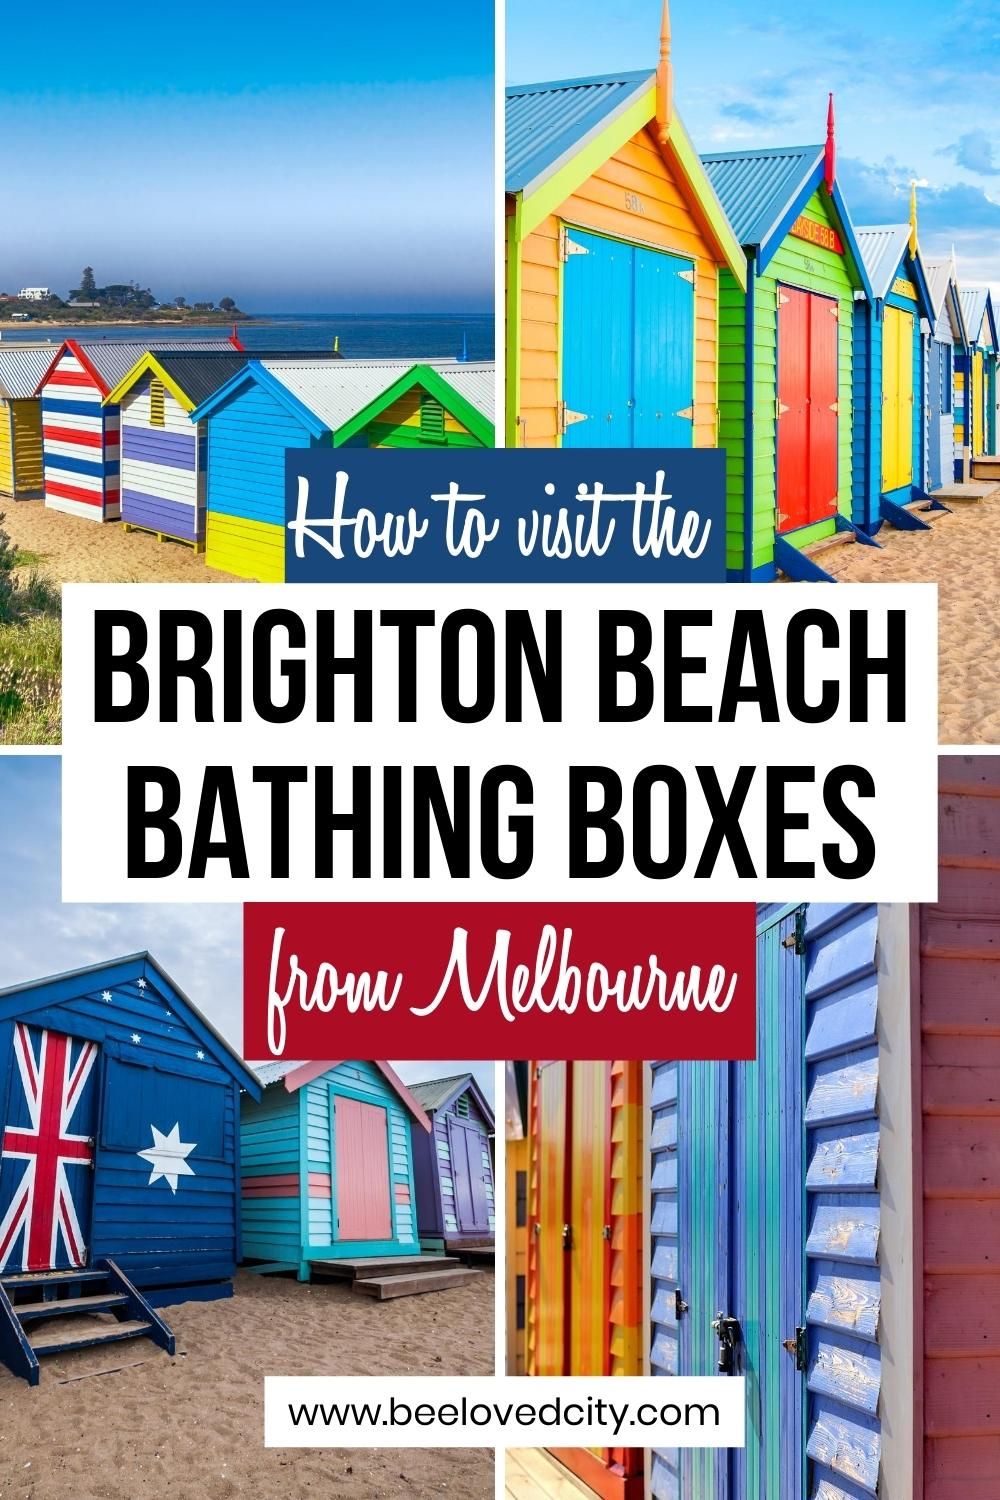 how to get to brighton Bathing boxes from Melbourne